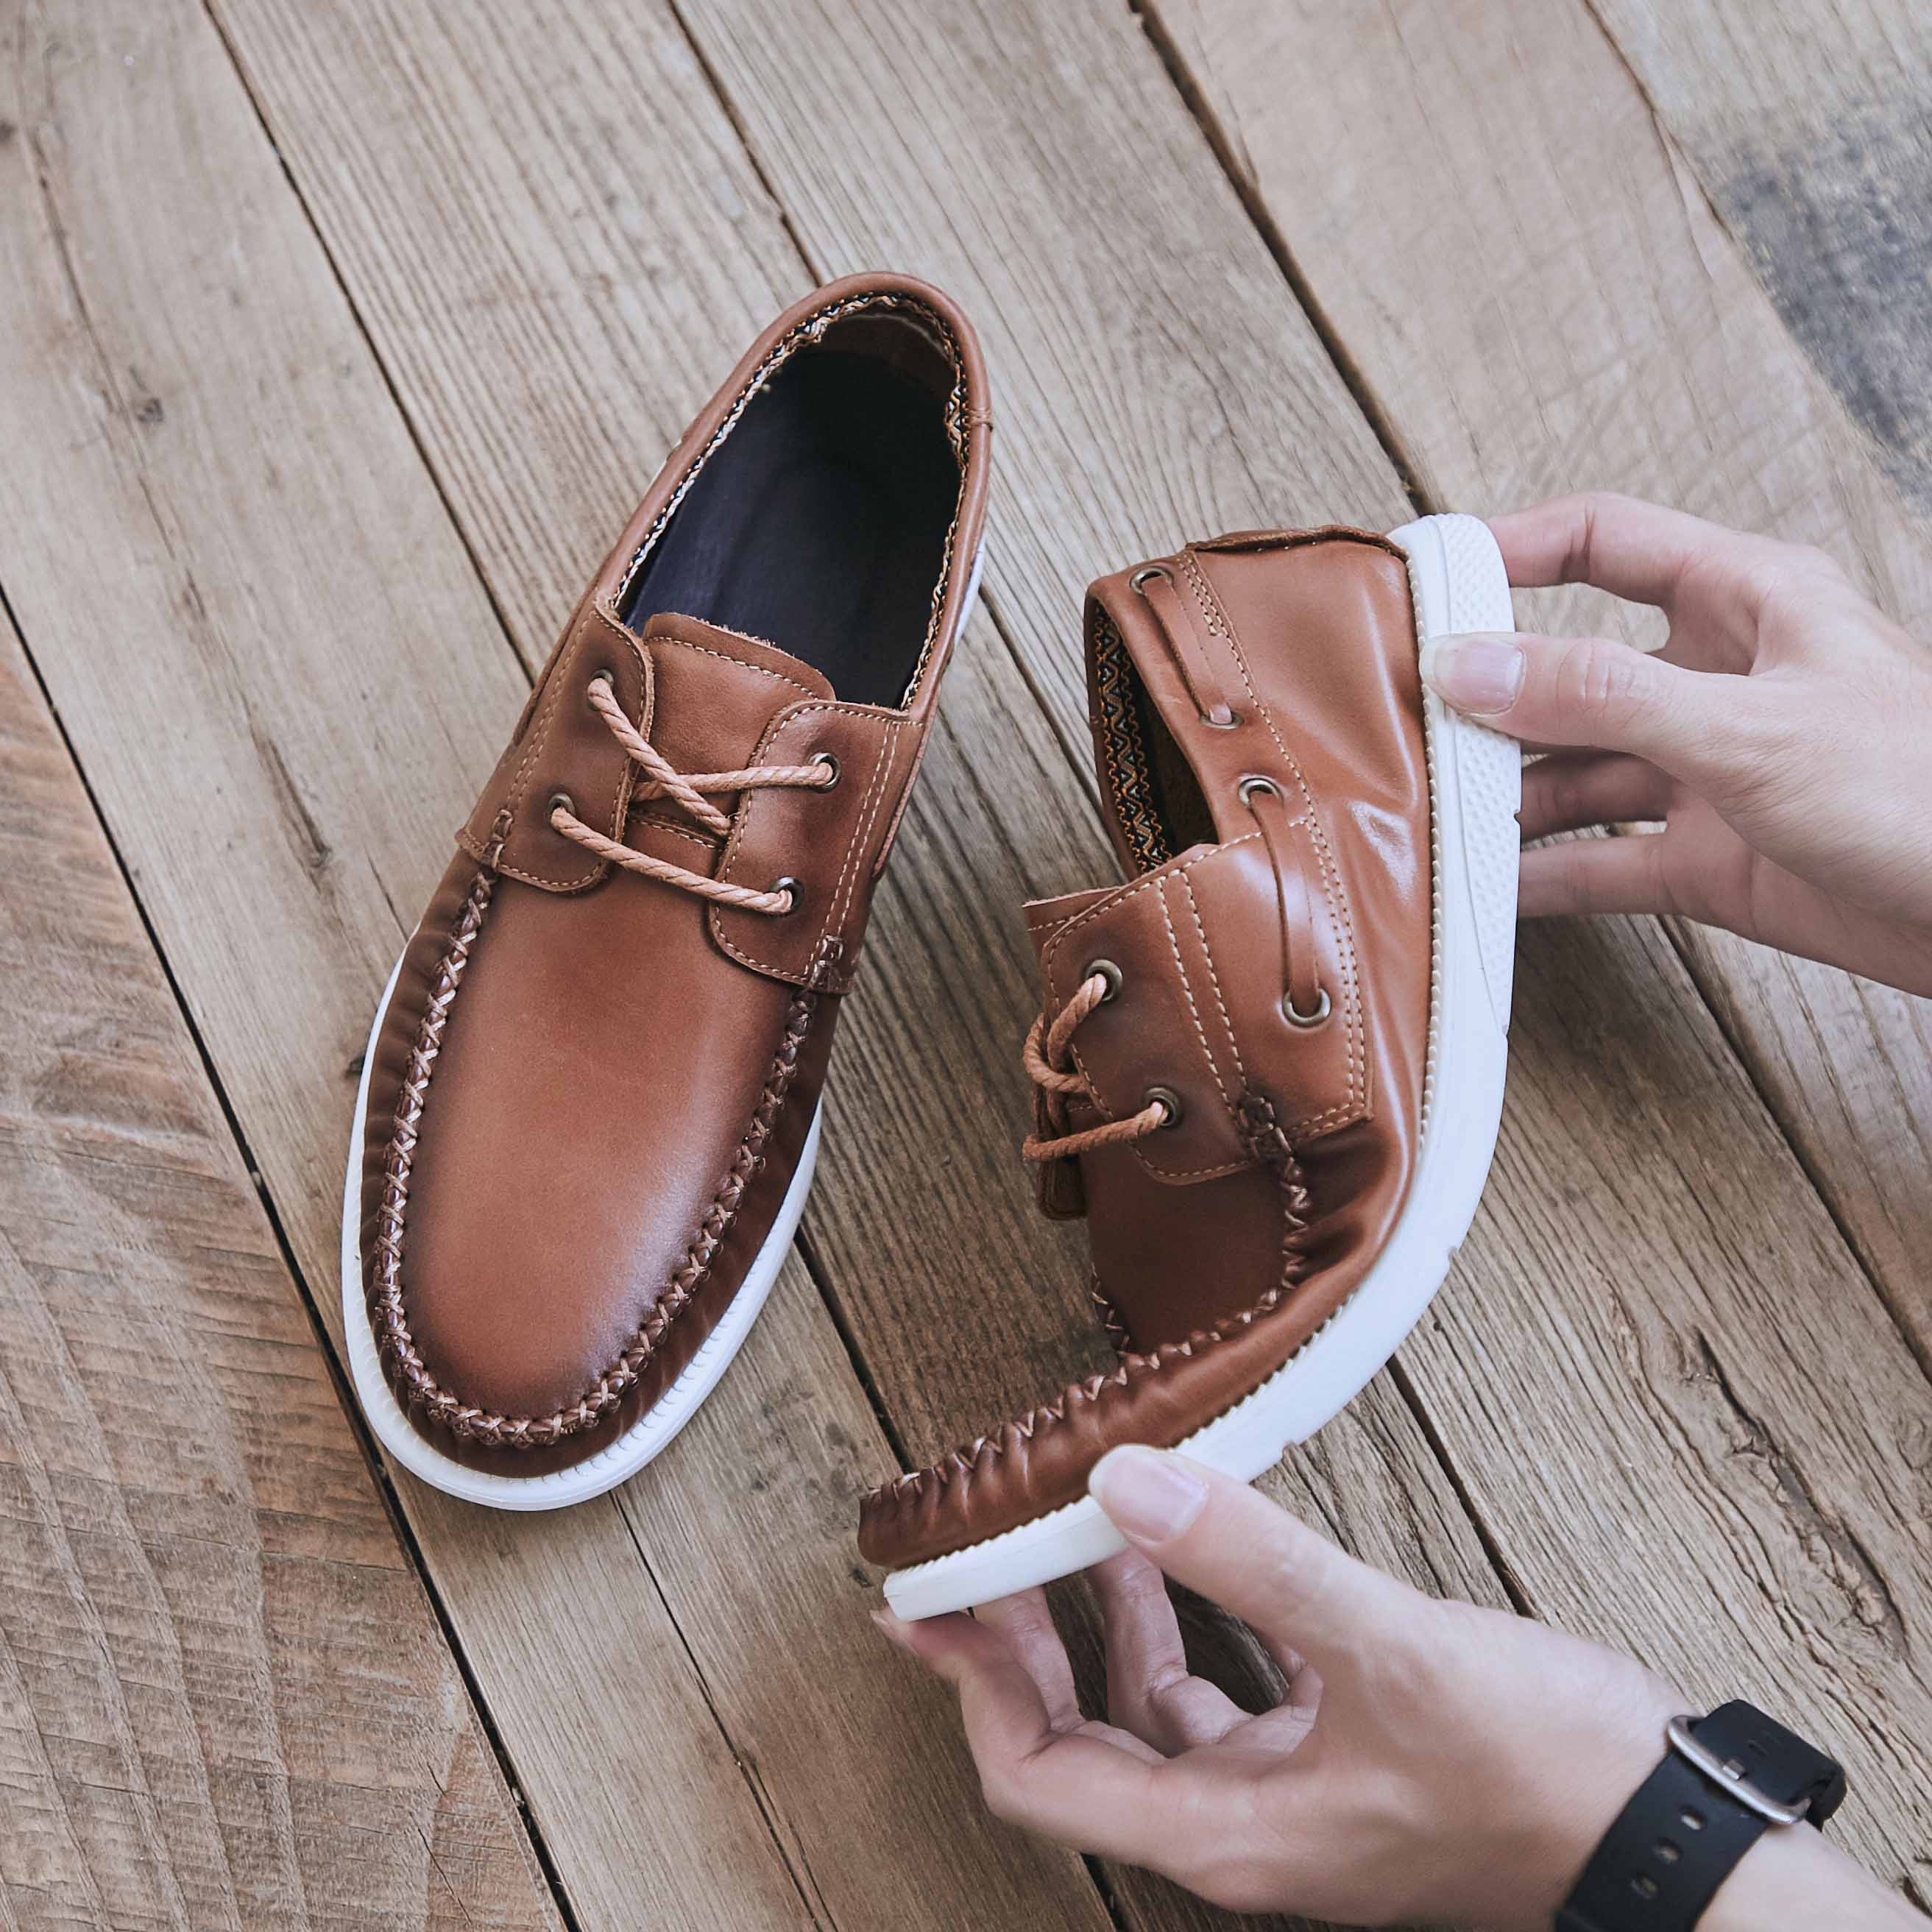 Genuine lux spring casual shoes mens fashion boat top leather soft sole versatile breathable beans